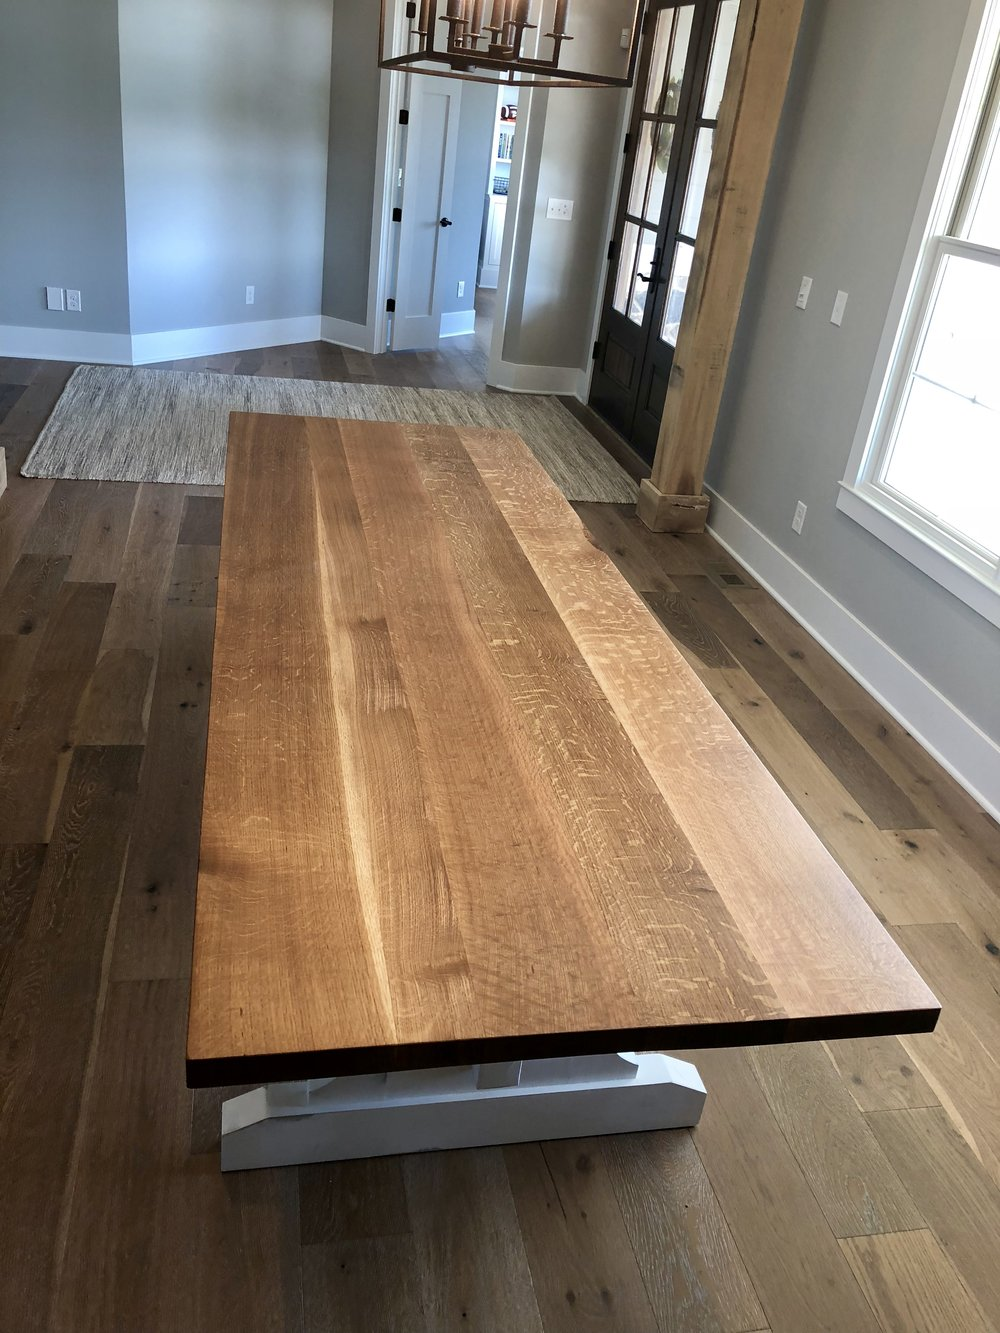 Quarter sawn white oak table with a white painted base custom made by Woods Of Wisdom